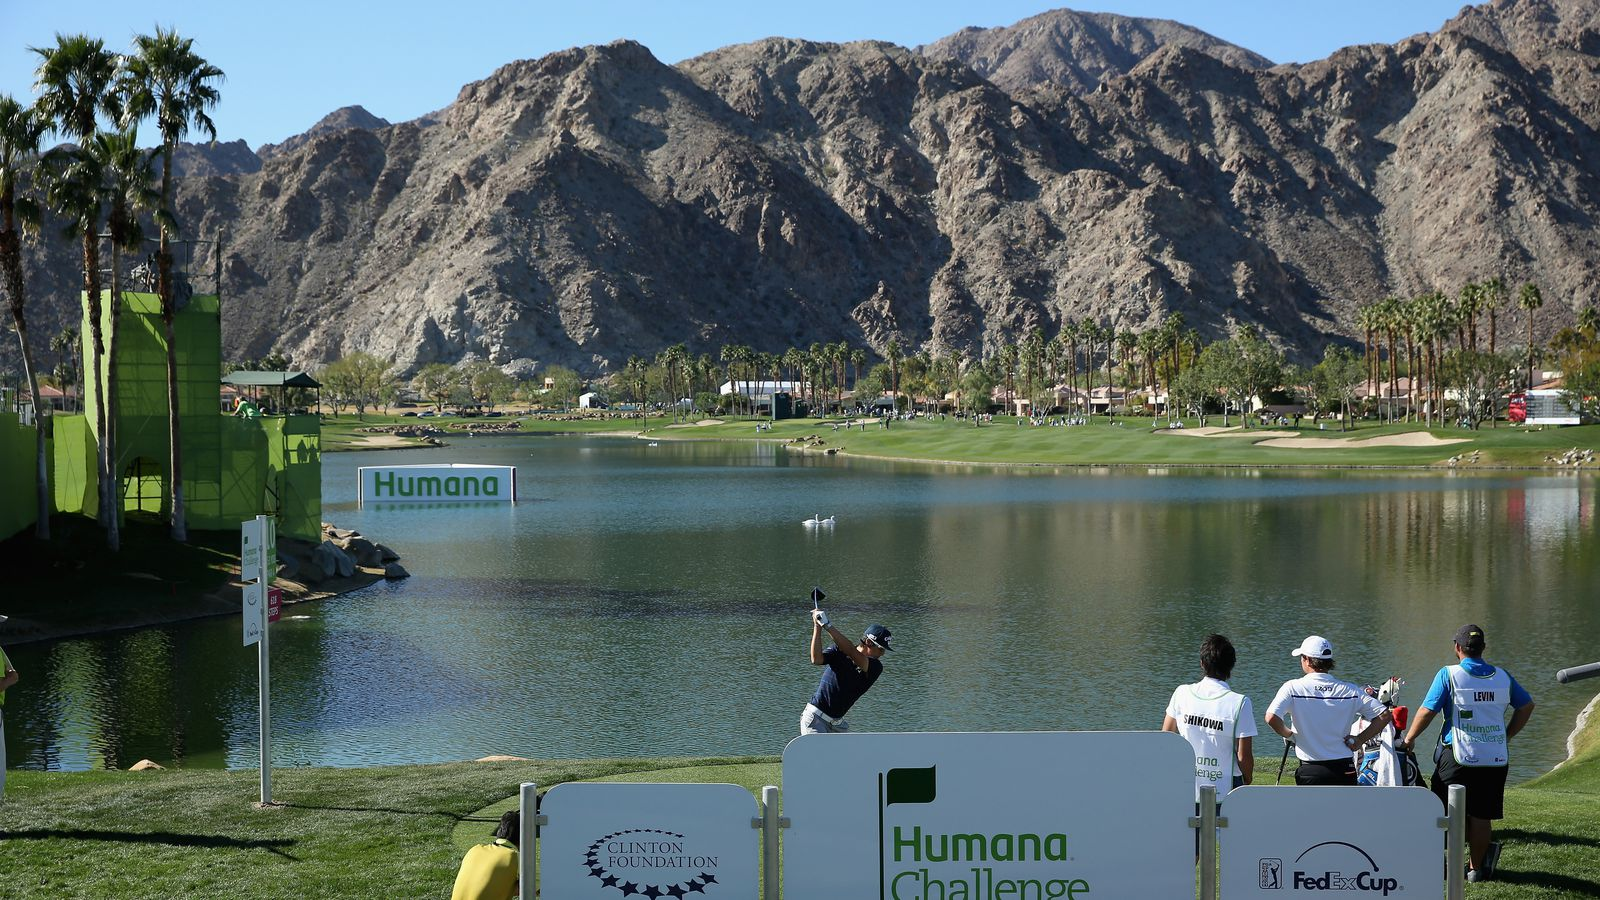 2014 Humana Challenge Tee Times Tv Schedule Streaming